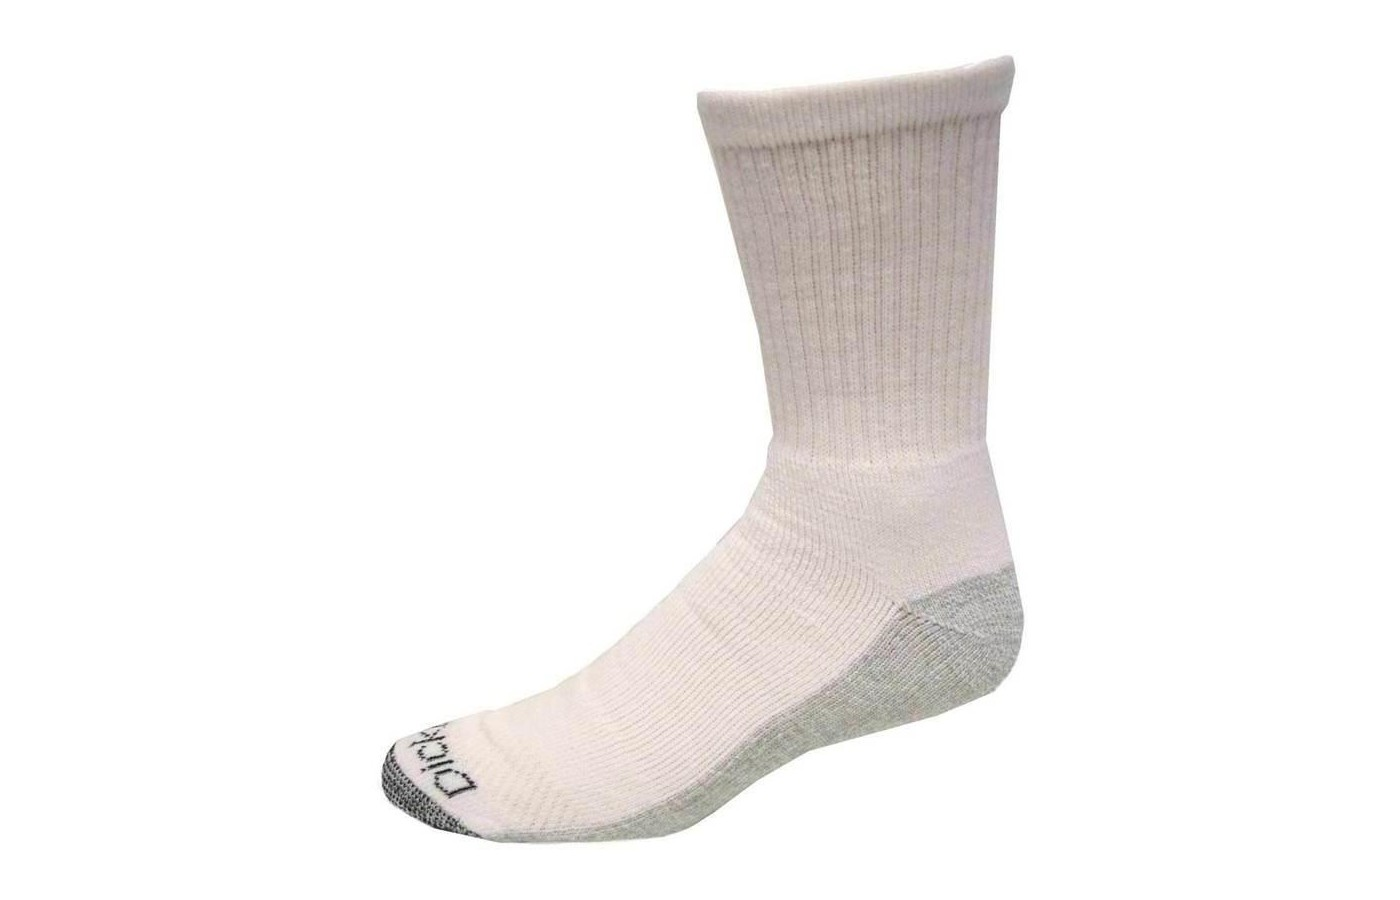 Dickies Dri-Tech Crew Sock Side